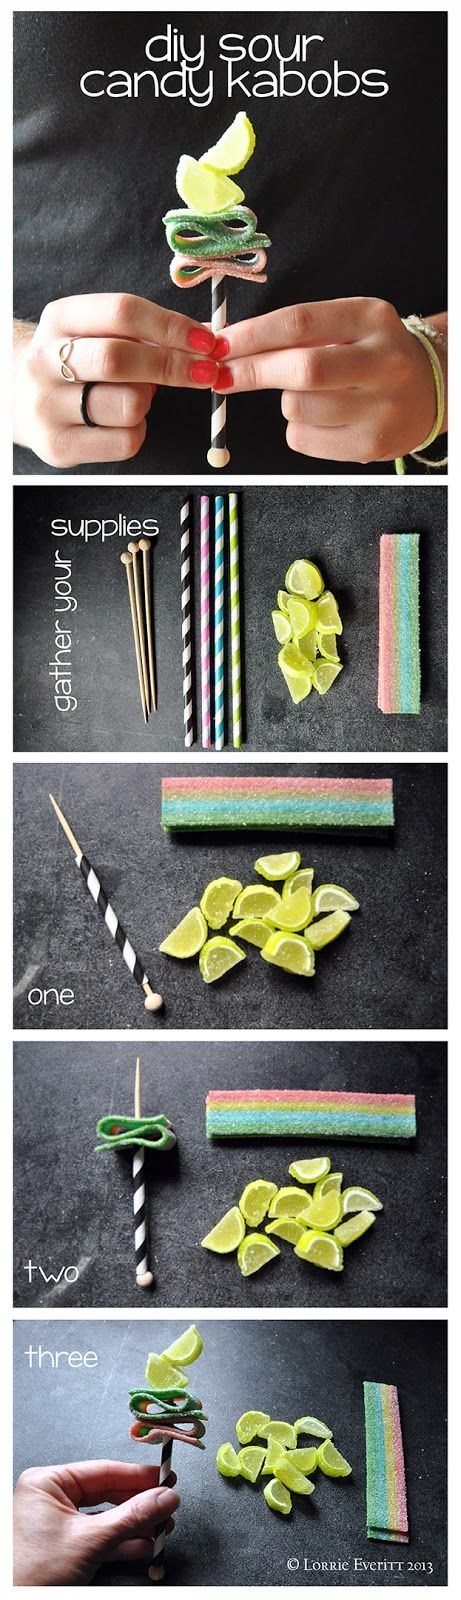 tutorial: create easy candy kabobs to use for party favors | Lorrie Everitt Studio